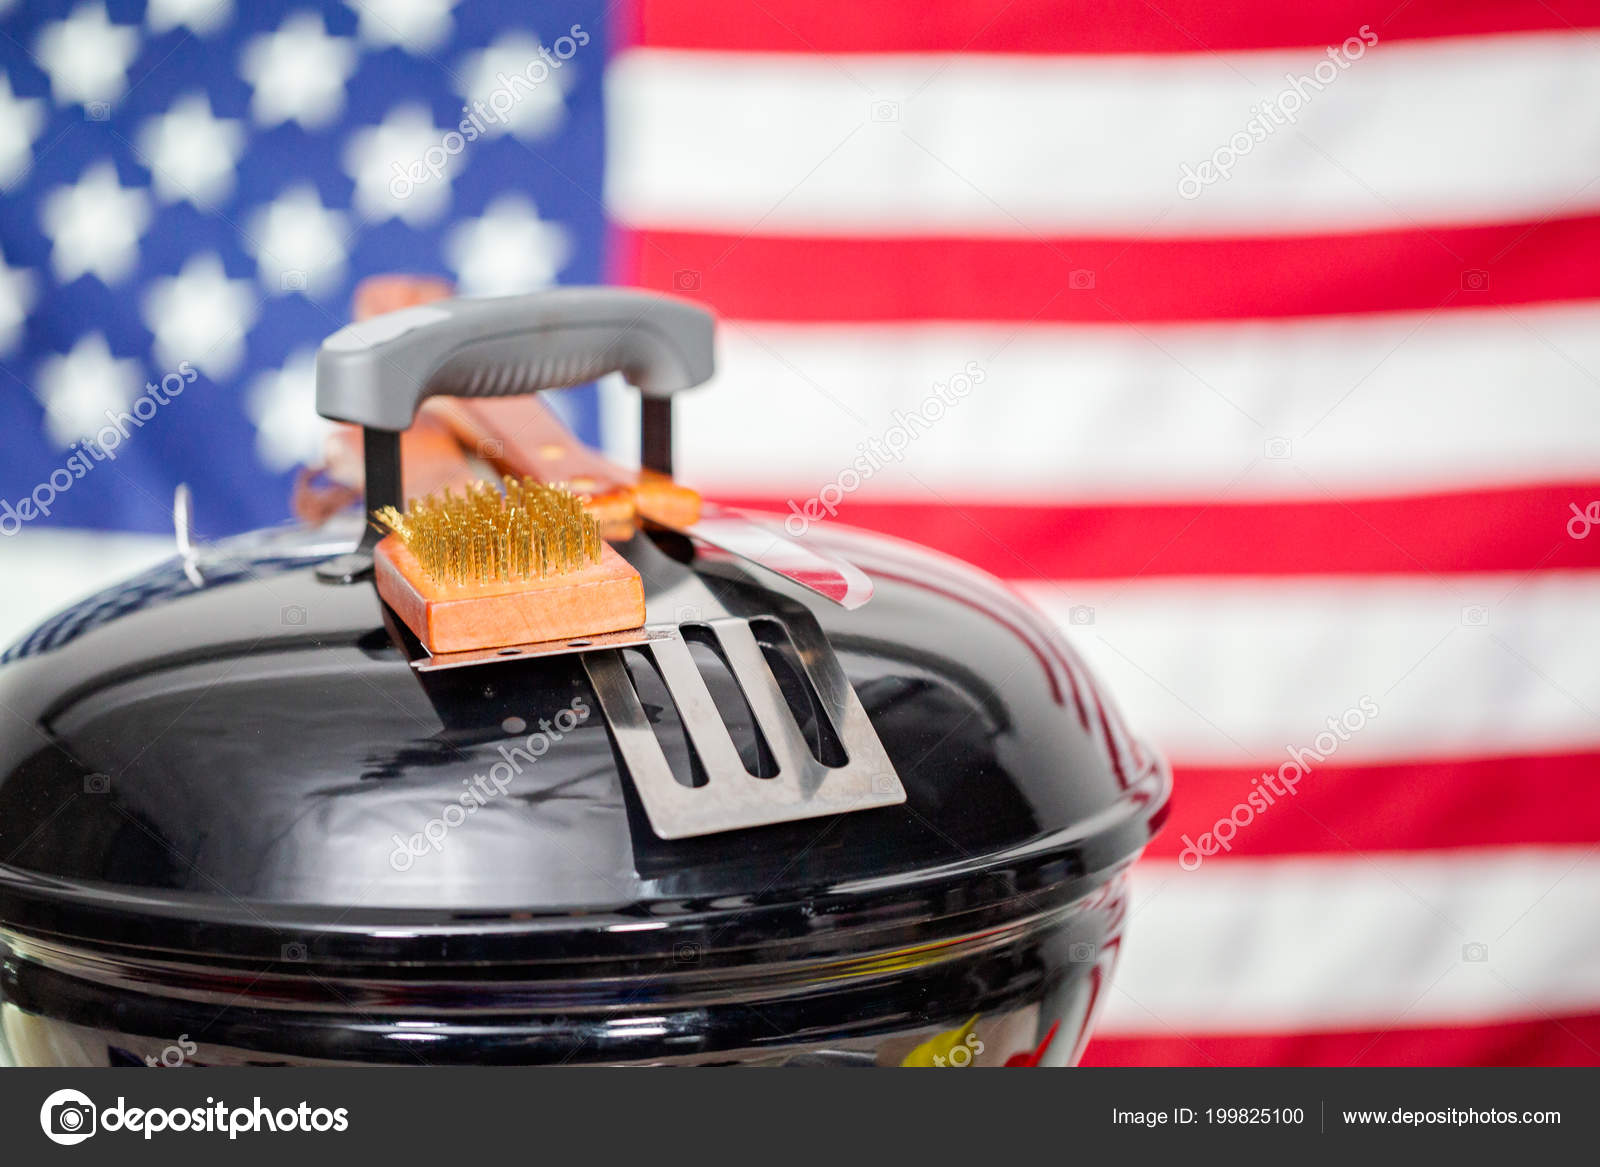 Small Round Charcoal Grill And July 4th Decorations On American Flag Background Photo By Urban Light